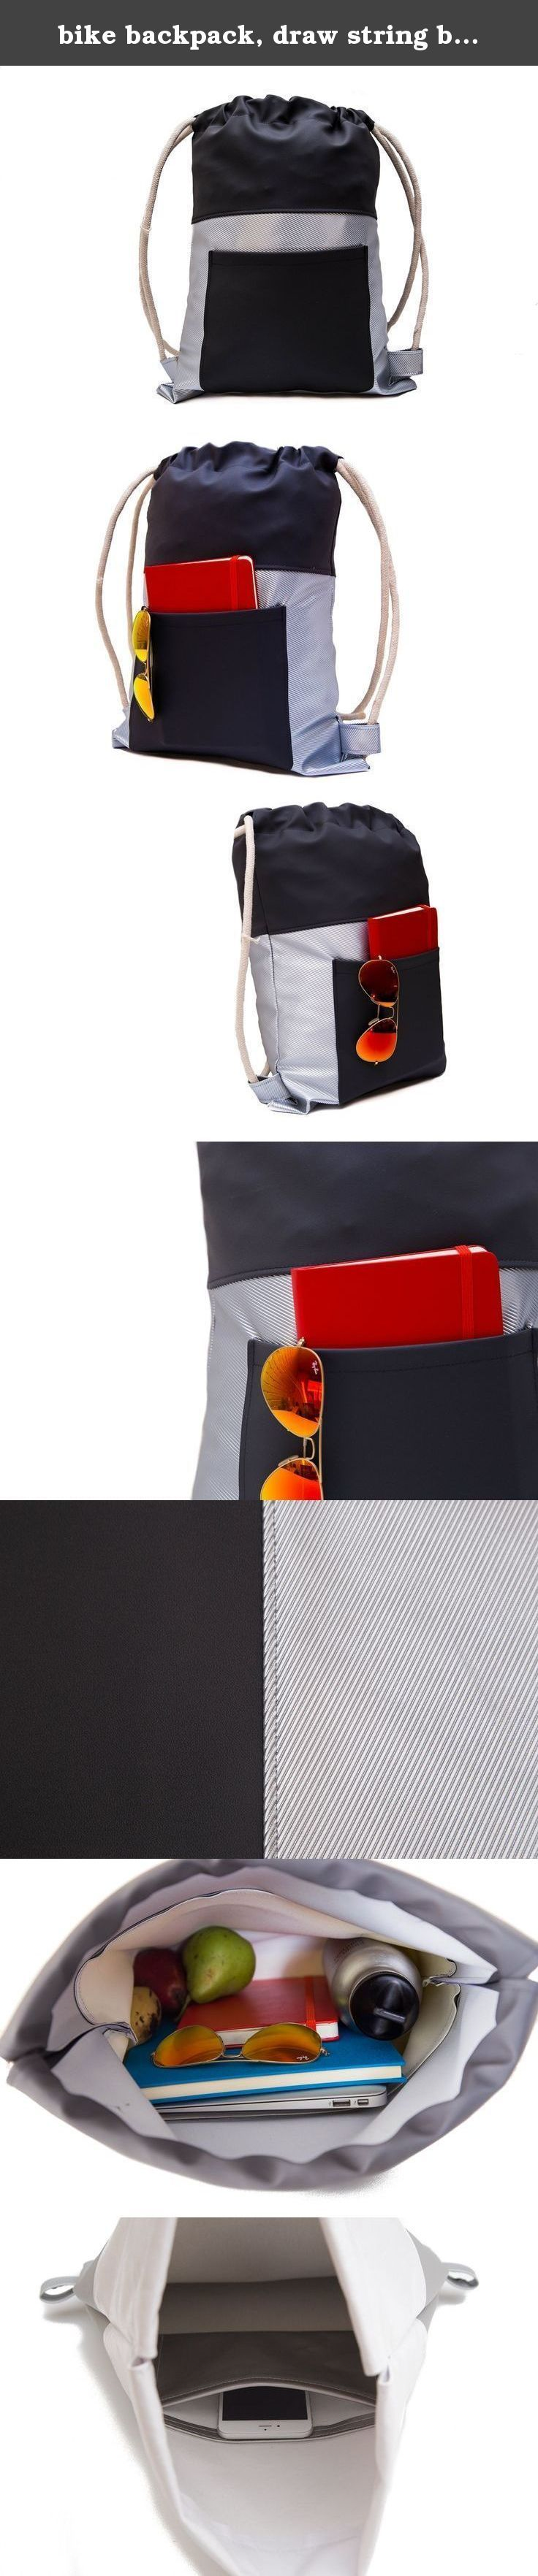 """bike backpack, draw string backpack, drawstring bags, women lunch bag, gym bag, HIPSTER, Animal friendly bag. The bag is crafted from top Italian fabrics and features thick & soft cotton rope as the drawstring closure. The bag is big enough so it can contain up to 15"""" laptop on top on other things, so it is great for either school, gym, daily life, or even late night events. Dimensions: Width: 35 cm / 13.5 Inch Height: 46 cm / 18 Inch Each bag has an external pocket for a small notebook..."""